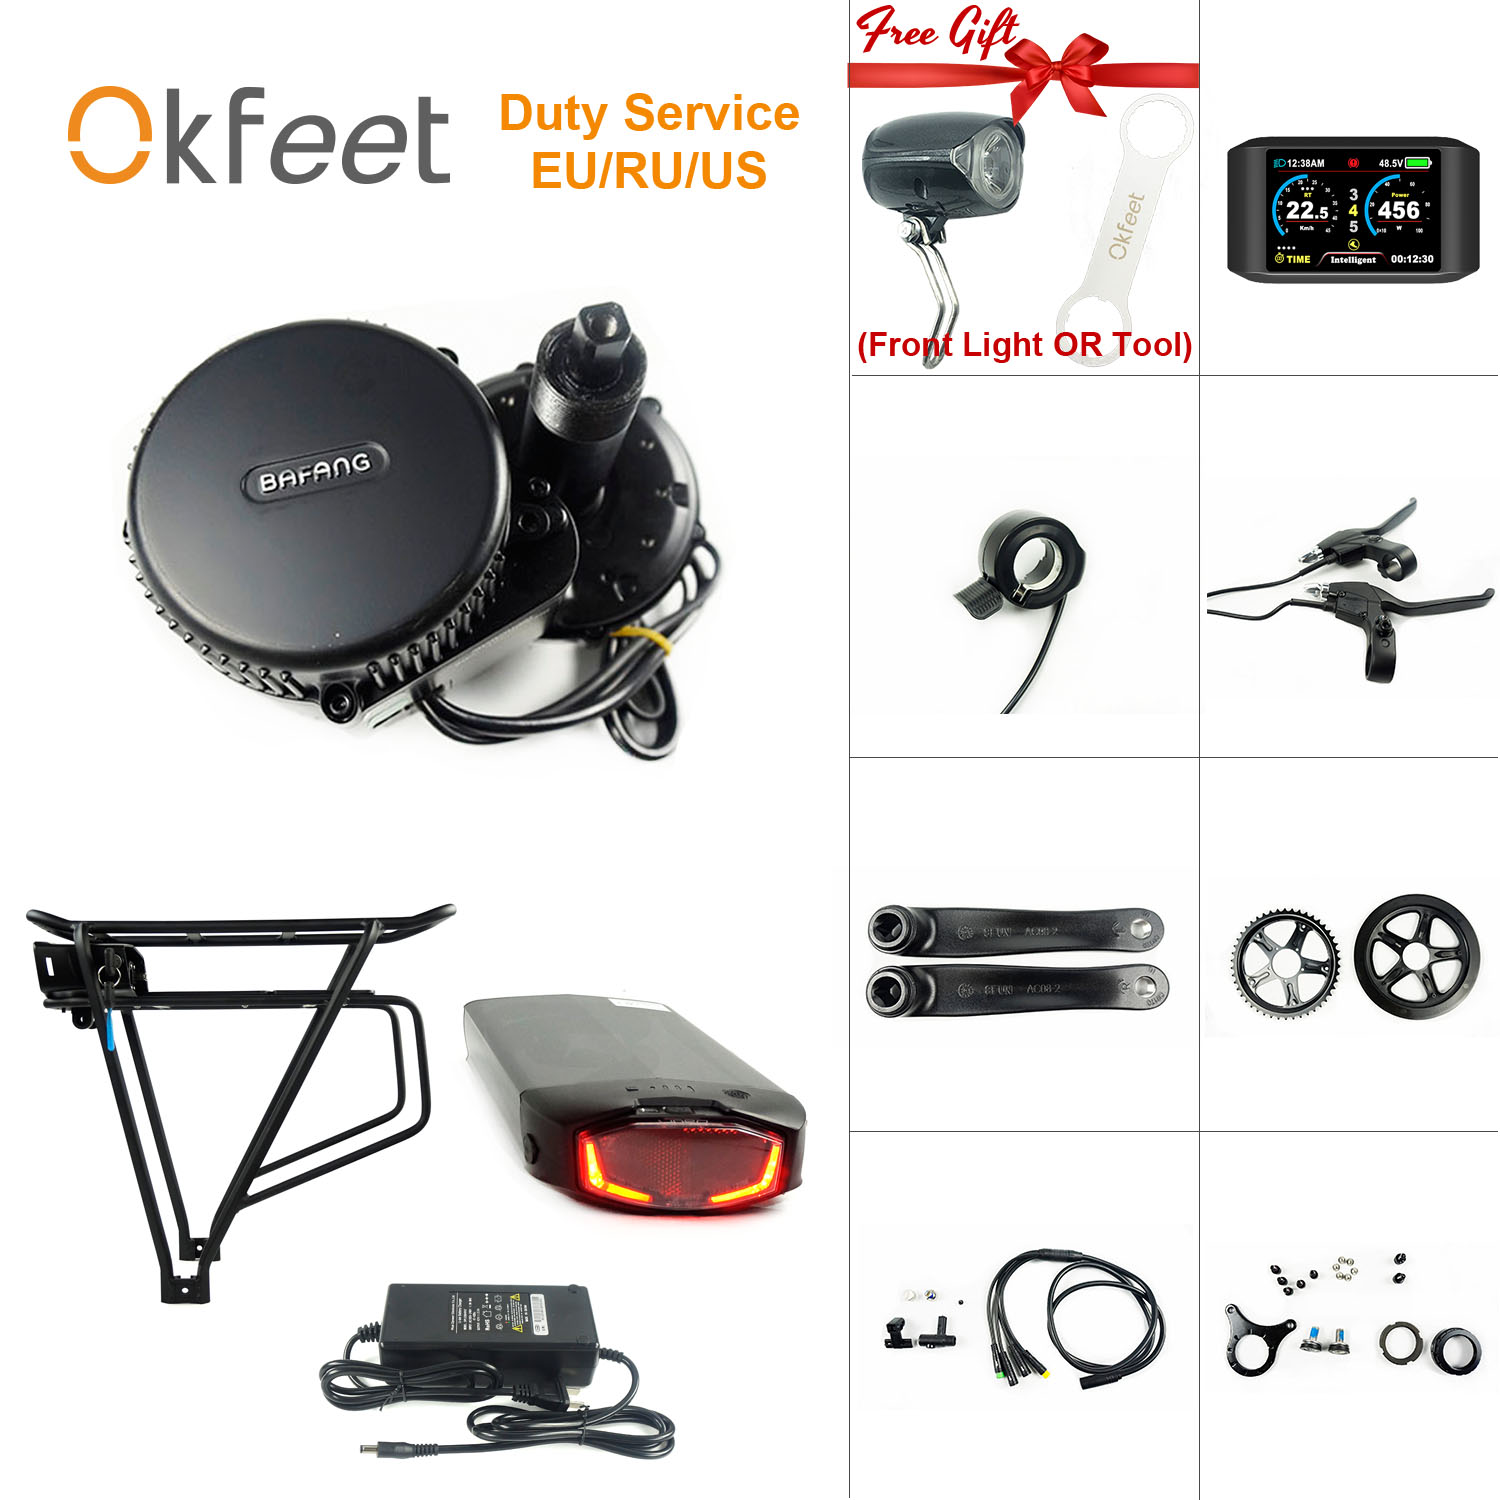 Bafang <font><b>36V</b></font> 250W BBS01 MM G340 Battery Light Mid Drive <font><b>Motor</b></font> Electric Bicycle E Bike Kit image